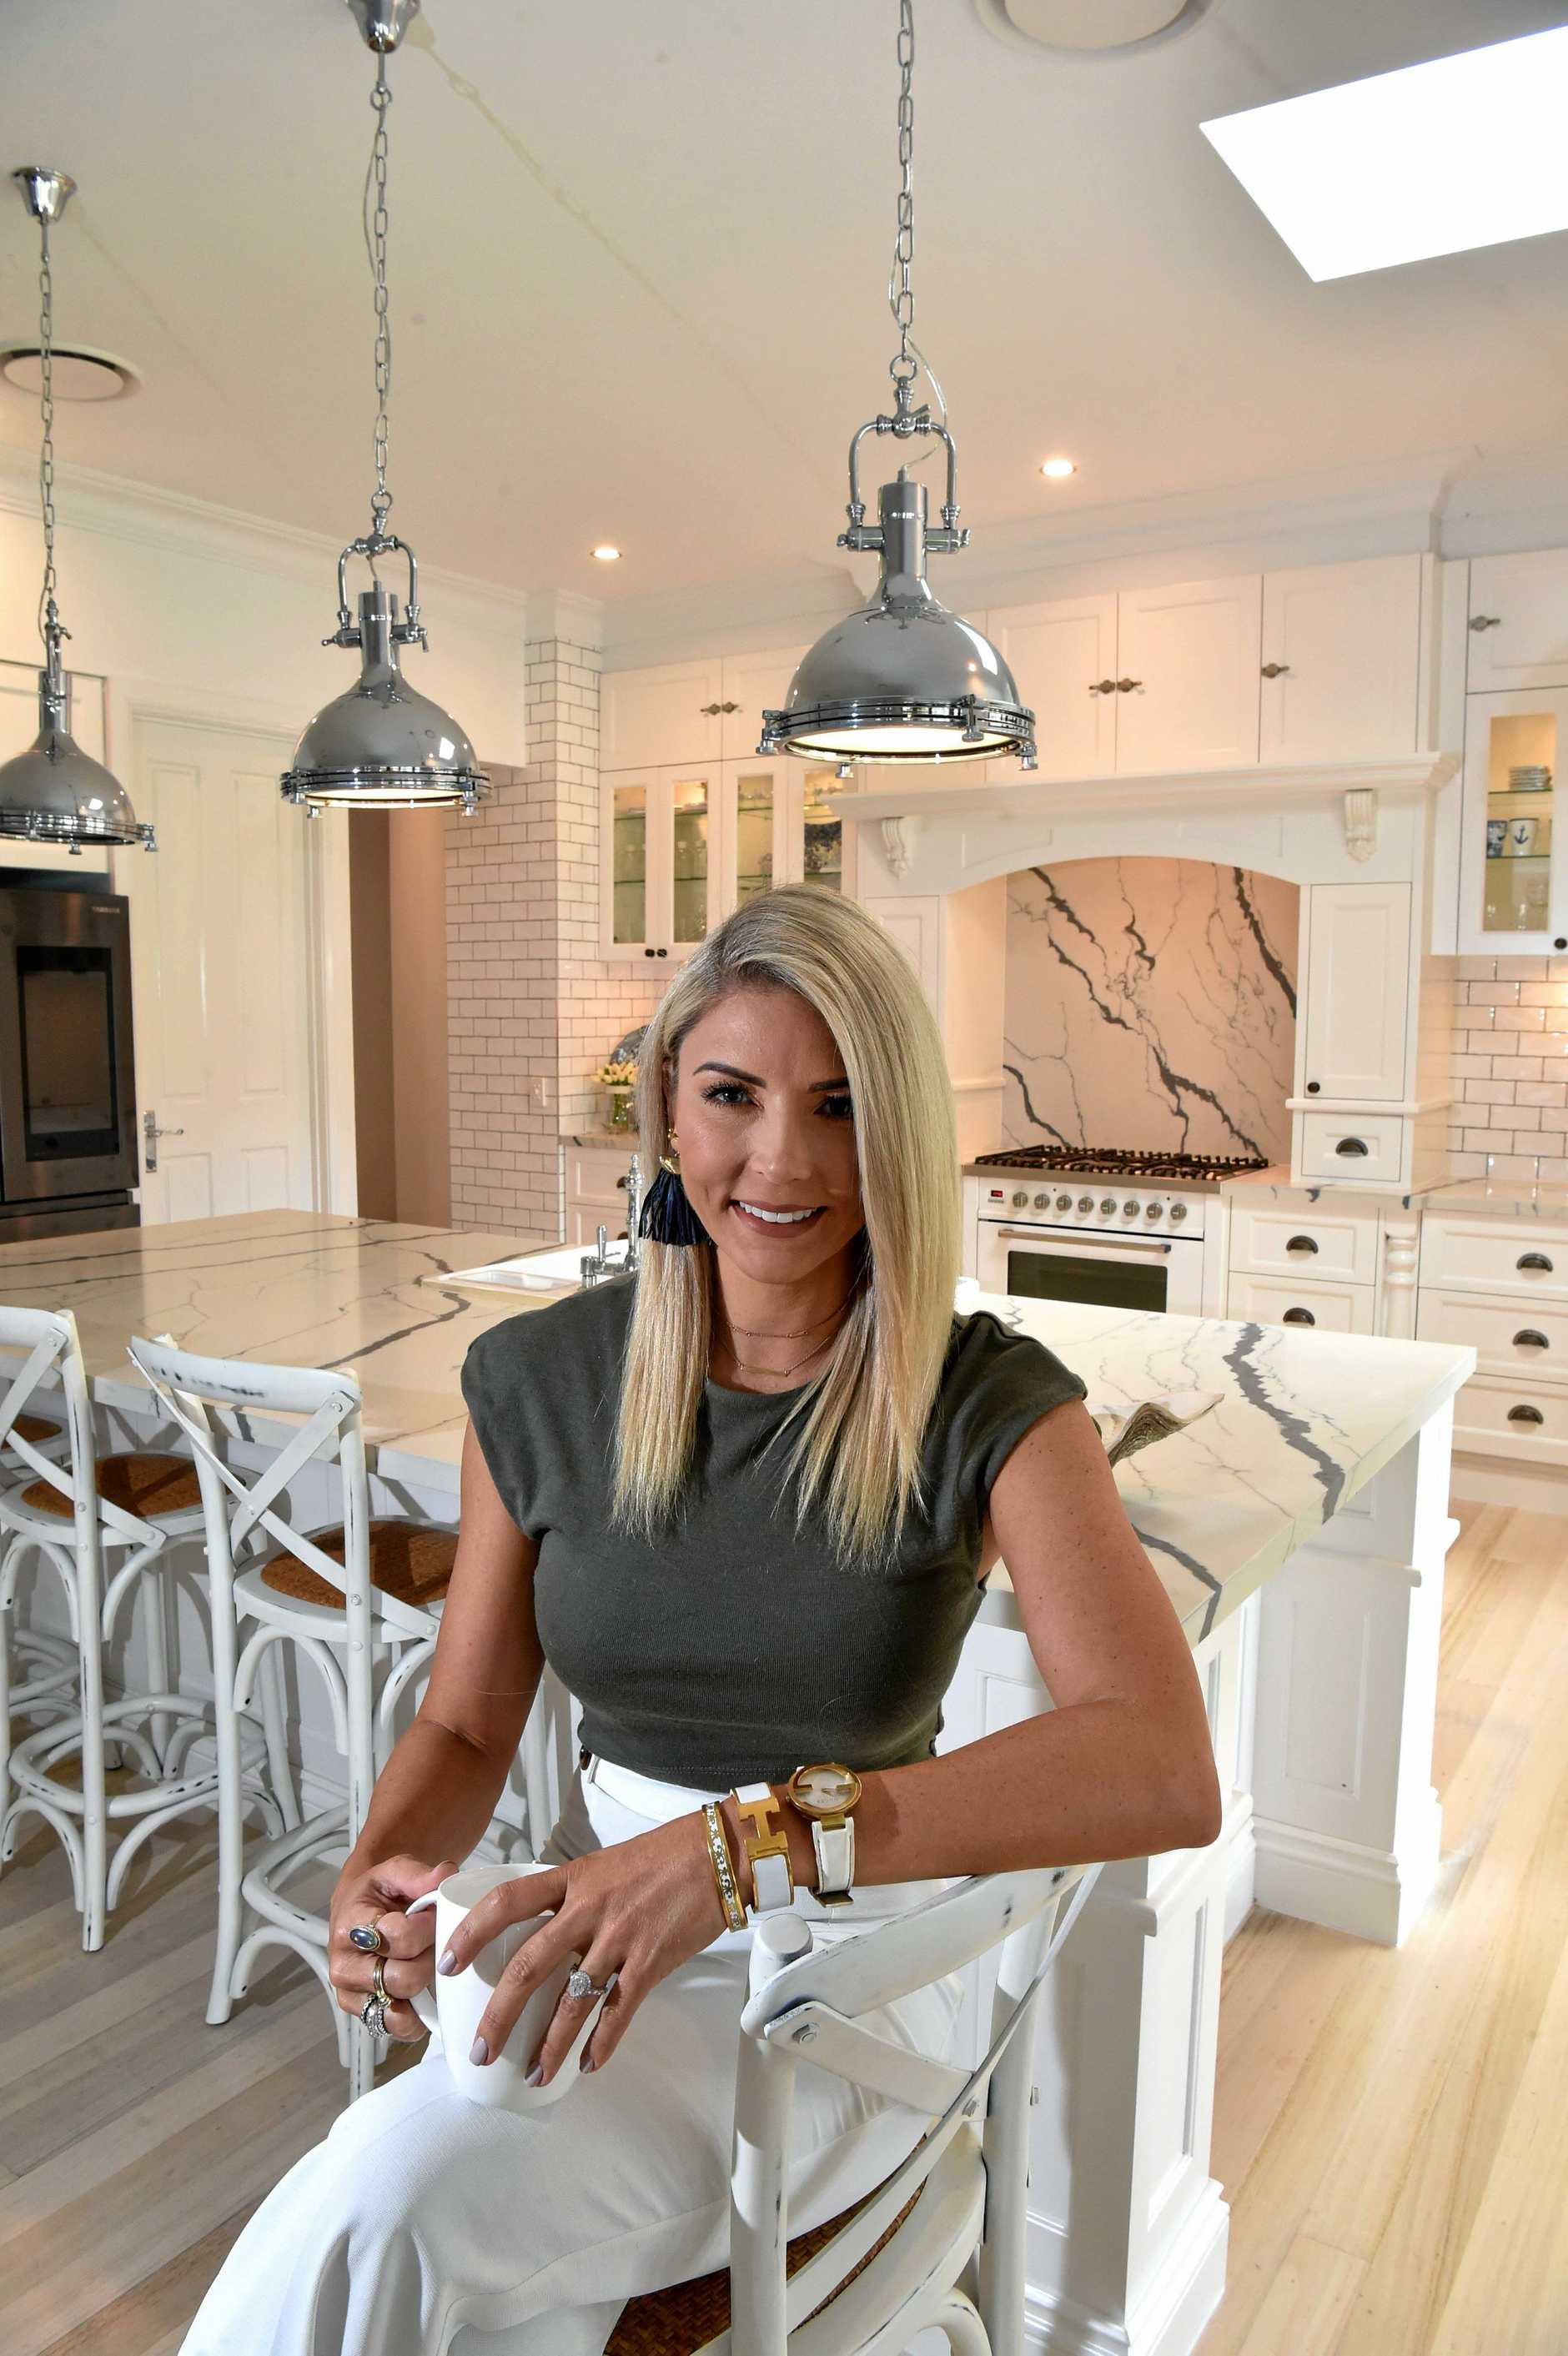 Interior designer Danni Morrison coverted her home, inspired by the Hamptons beach house theme.